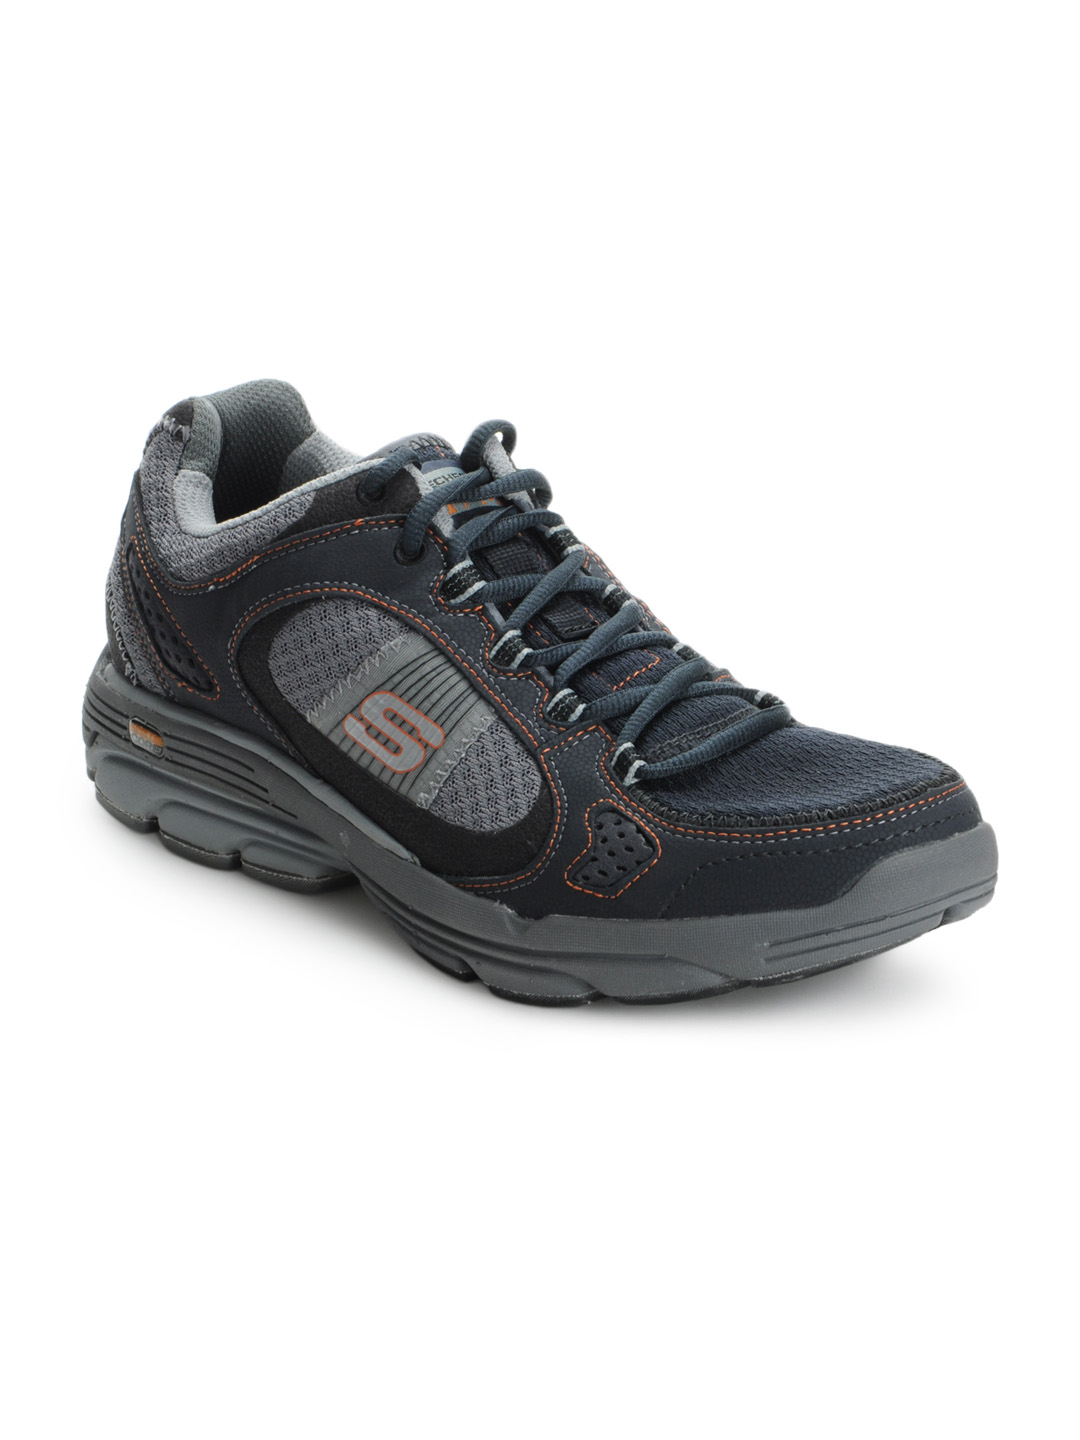 Skechers Men Navy Blue Sports Shoes